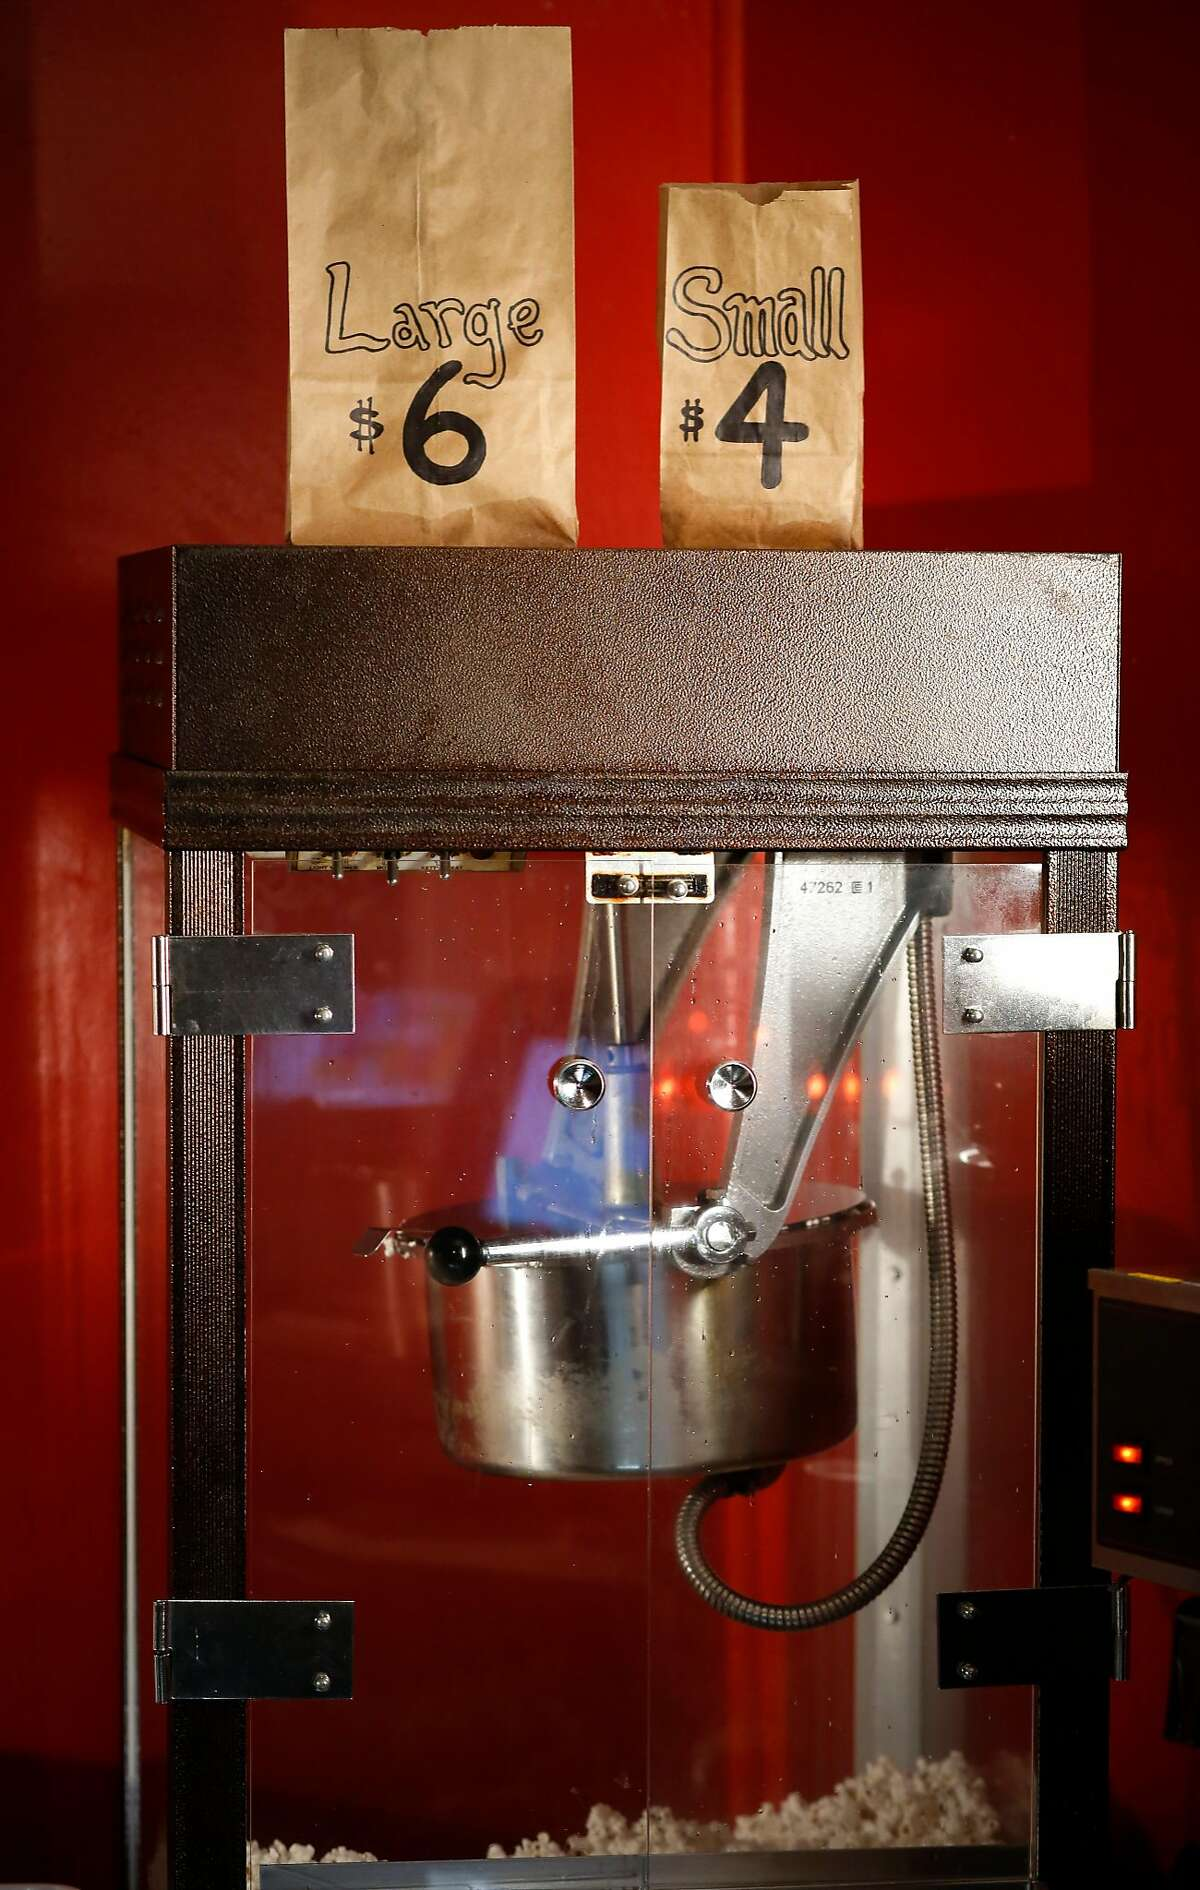 The popcorn machine at the concession stand in the Roxie Theater located on 16th st. in the Mission neighborhood in San Francisco, Ca. seen on Wed. December 20, 2017.